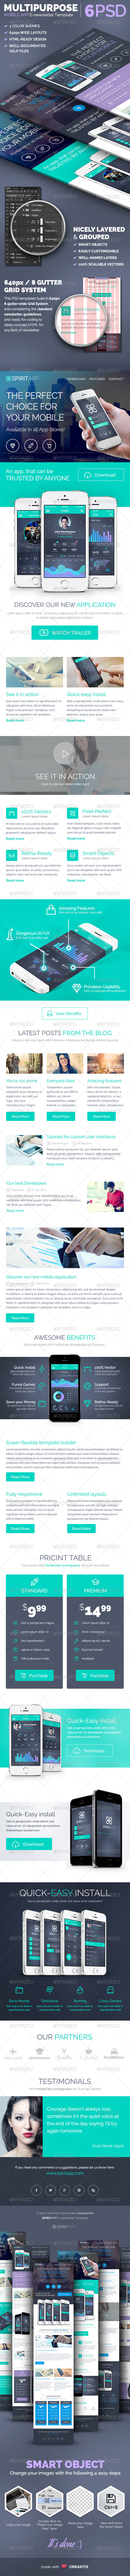 GraphicRiver Multipurpose Mobile App E-newsletter Template 7849208